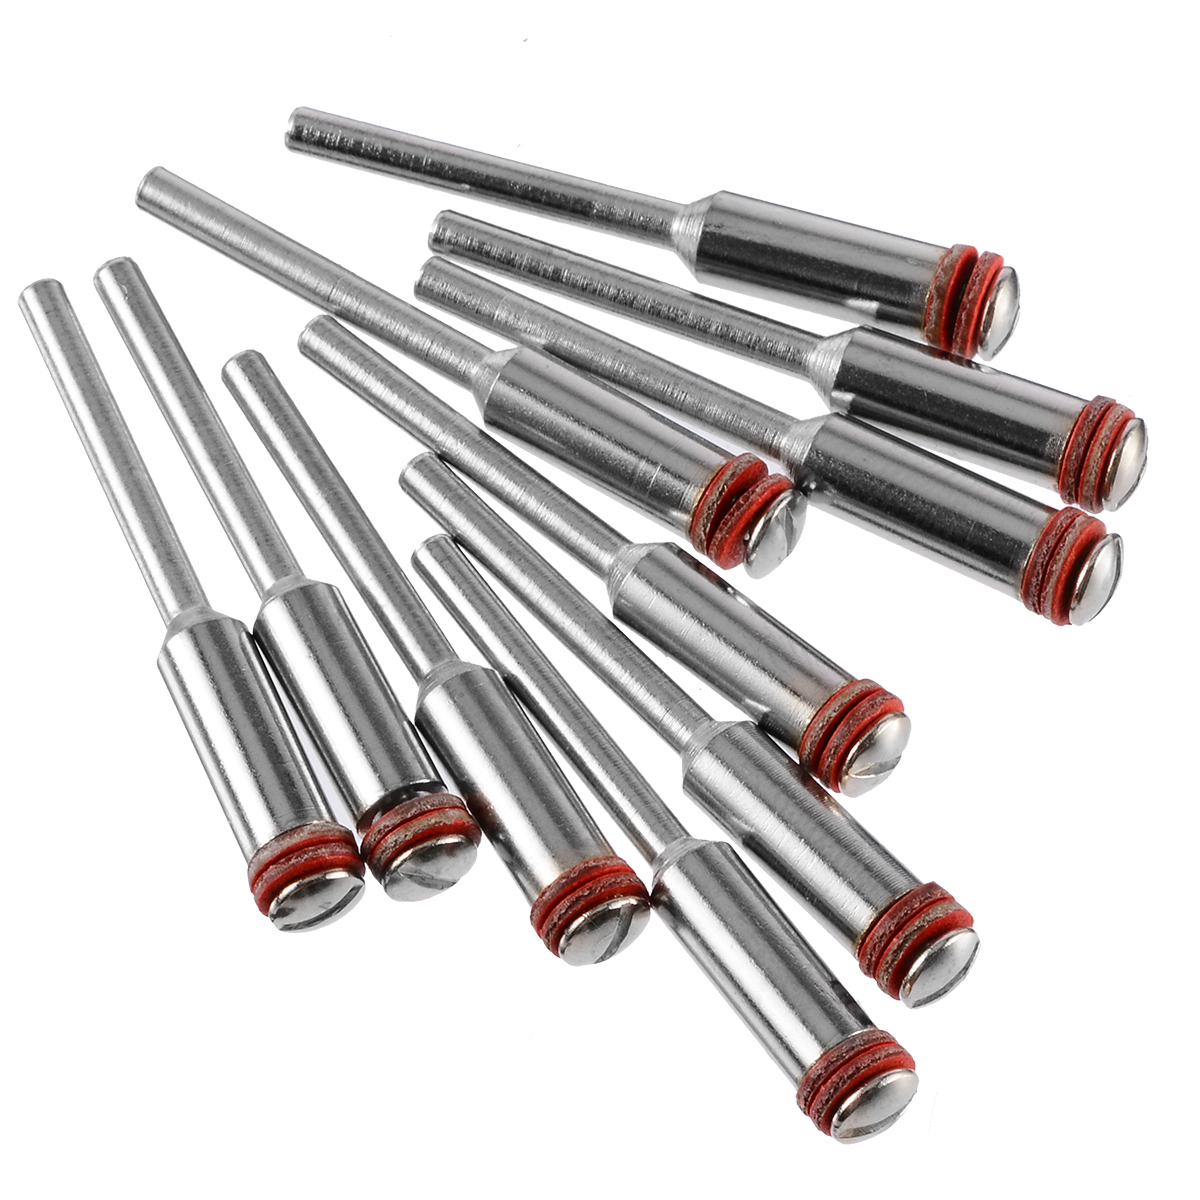 10pcs 2.35mm Screw Mandrel Shank Cut-off Wheel Holder For Small Woodworking Circular Saw Blade Cutting Abrasive Tool Accessories